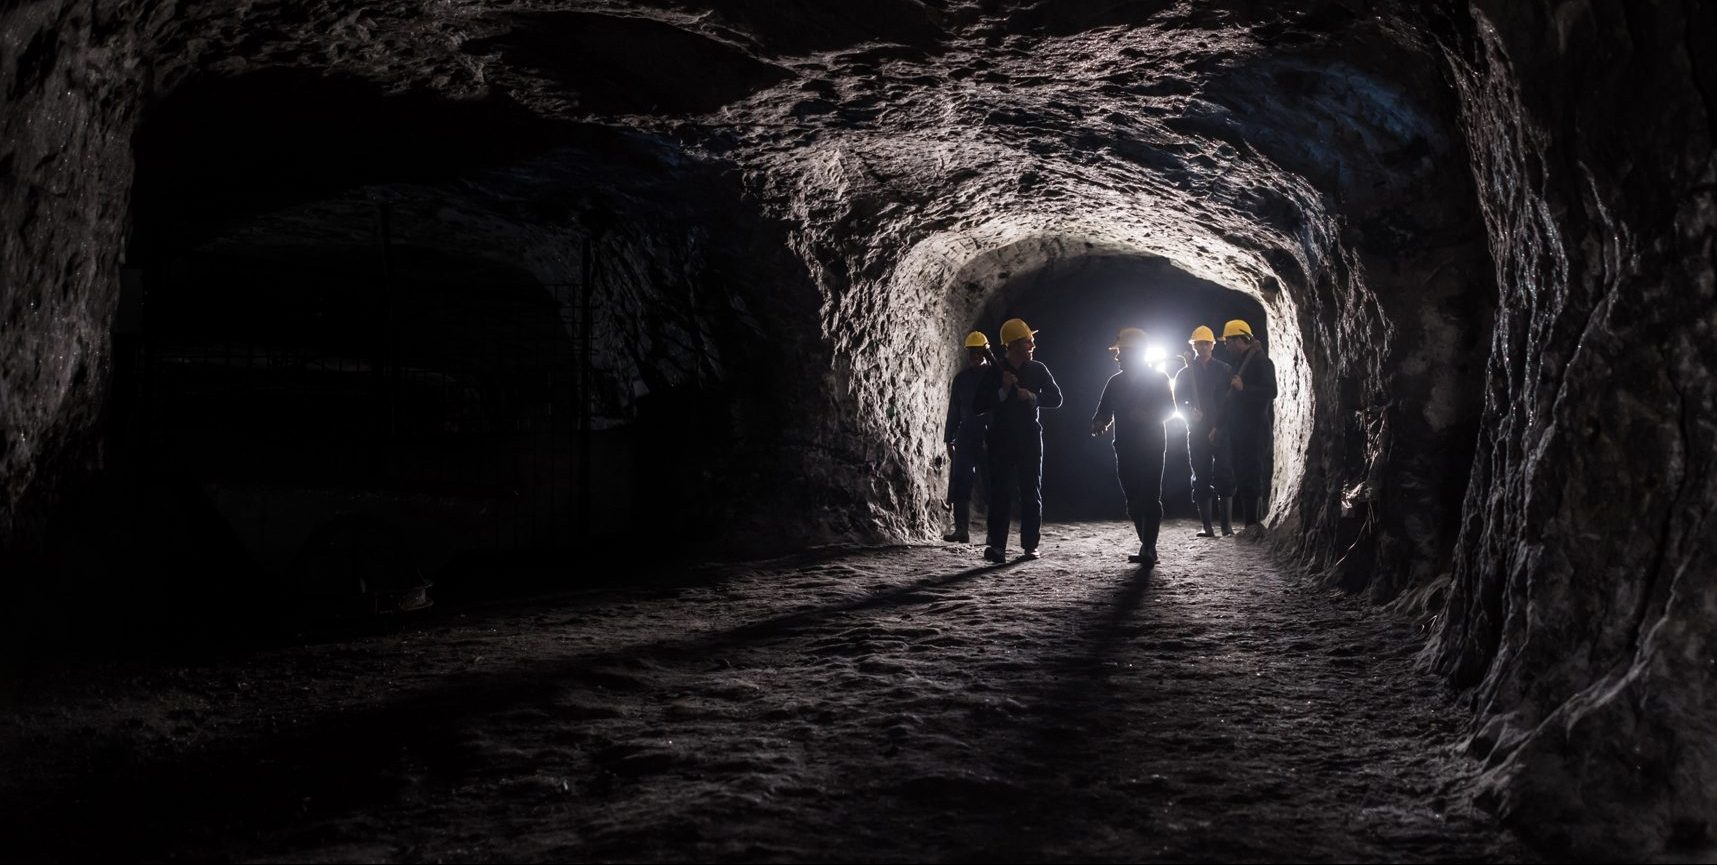 Coal miners talking and walking through a coal mine